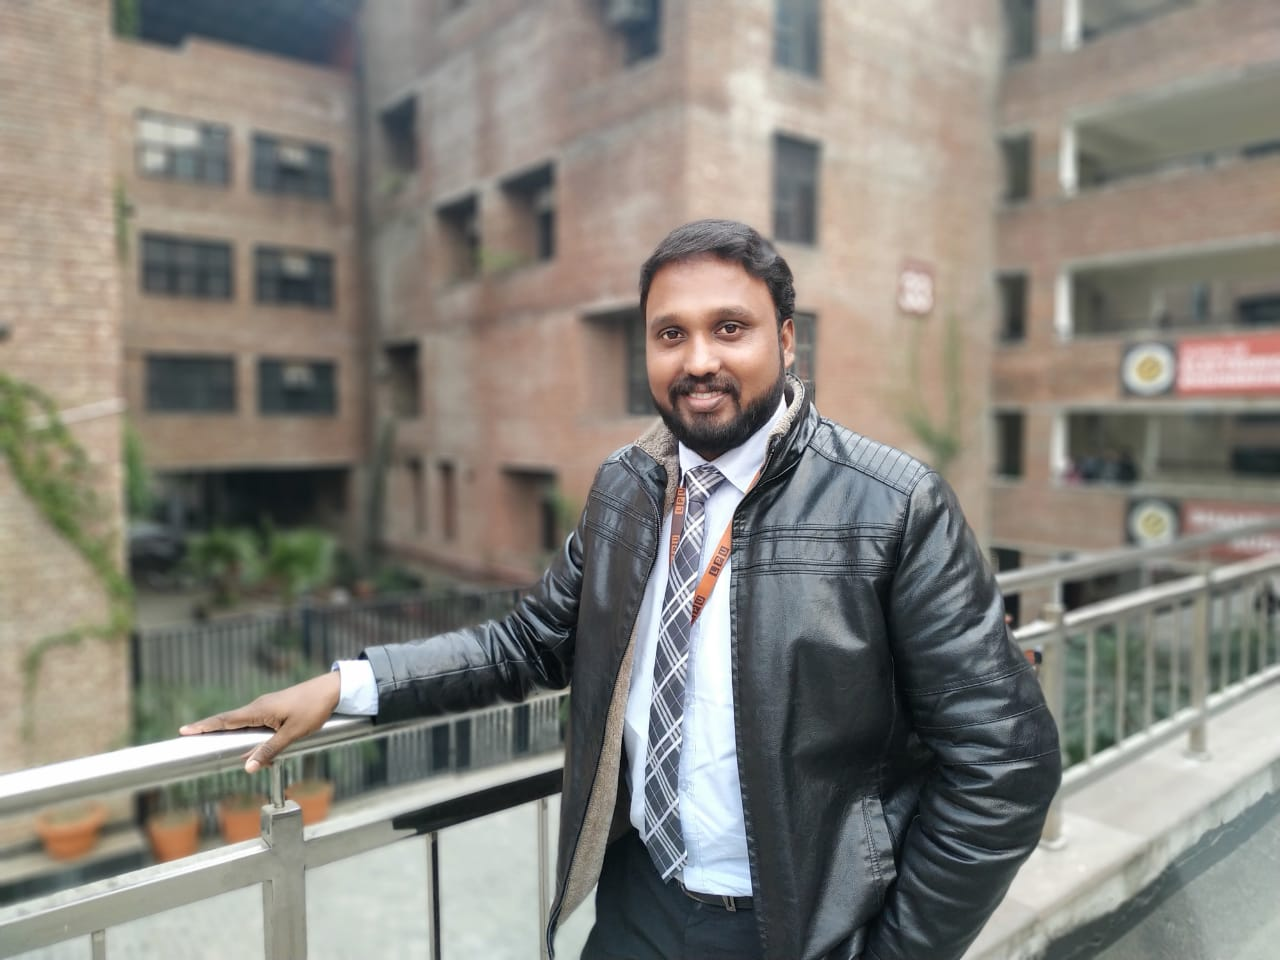 LPU researcher Dr Jastin Samuel involved in getting chocolate related patent granted from the Patent Office of the Government of India